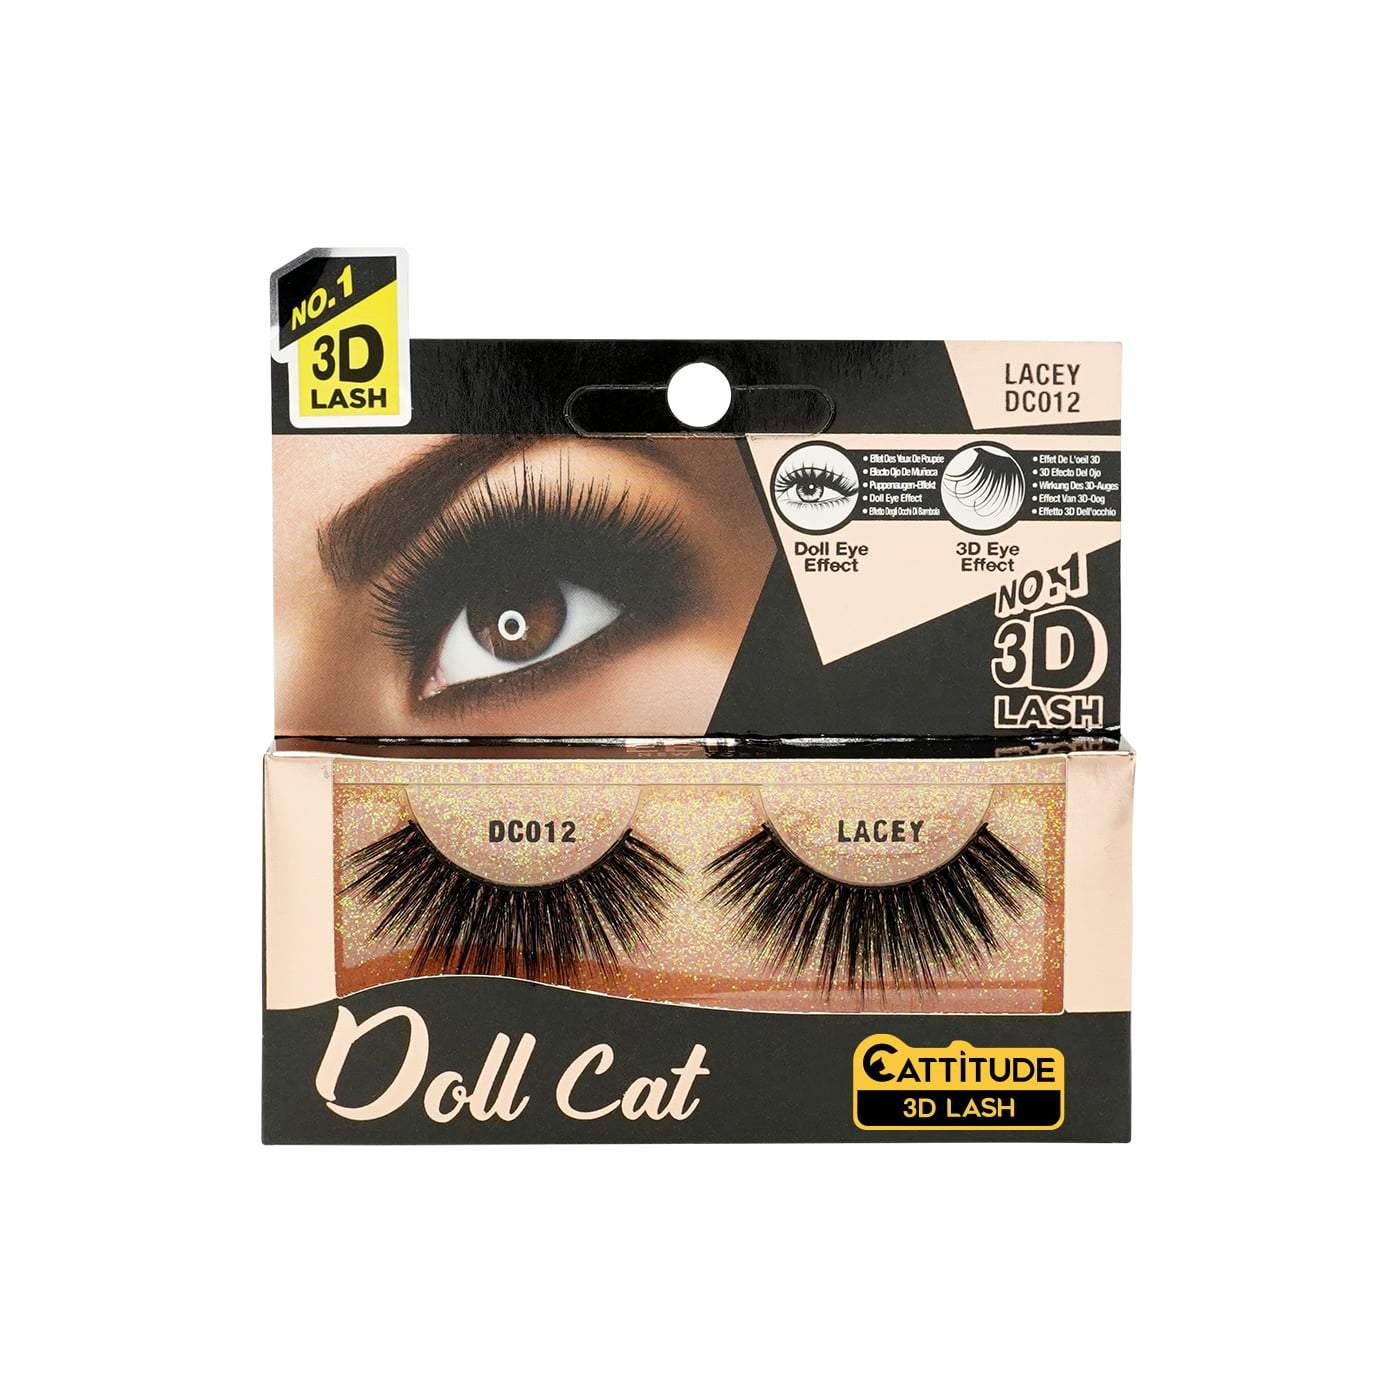 Ebin New York Doll Cat 3D Eye Lashes-Lacey